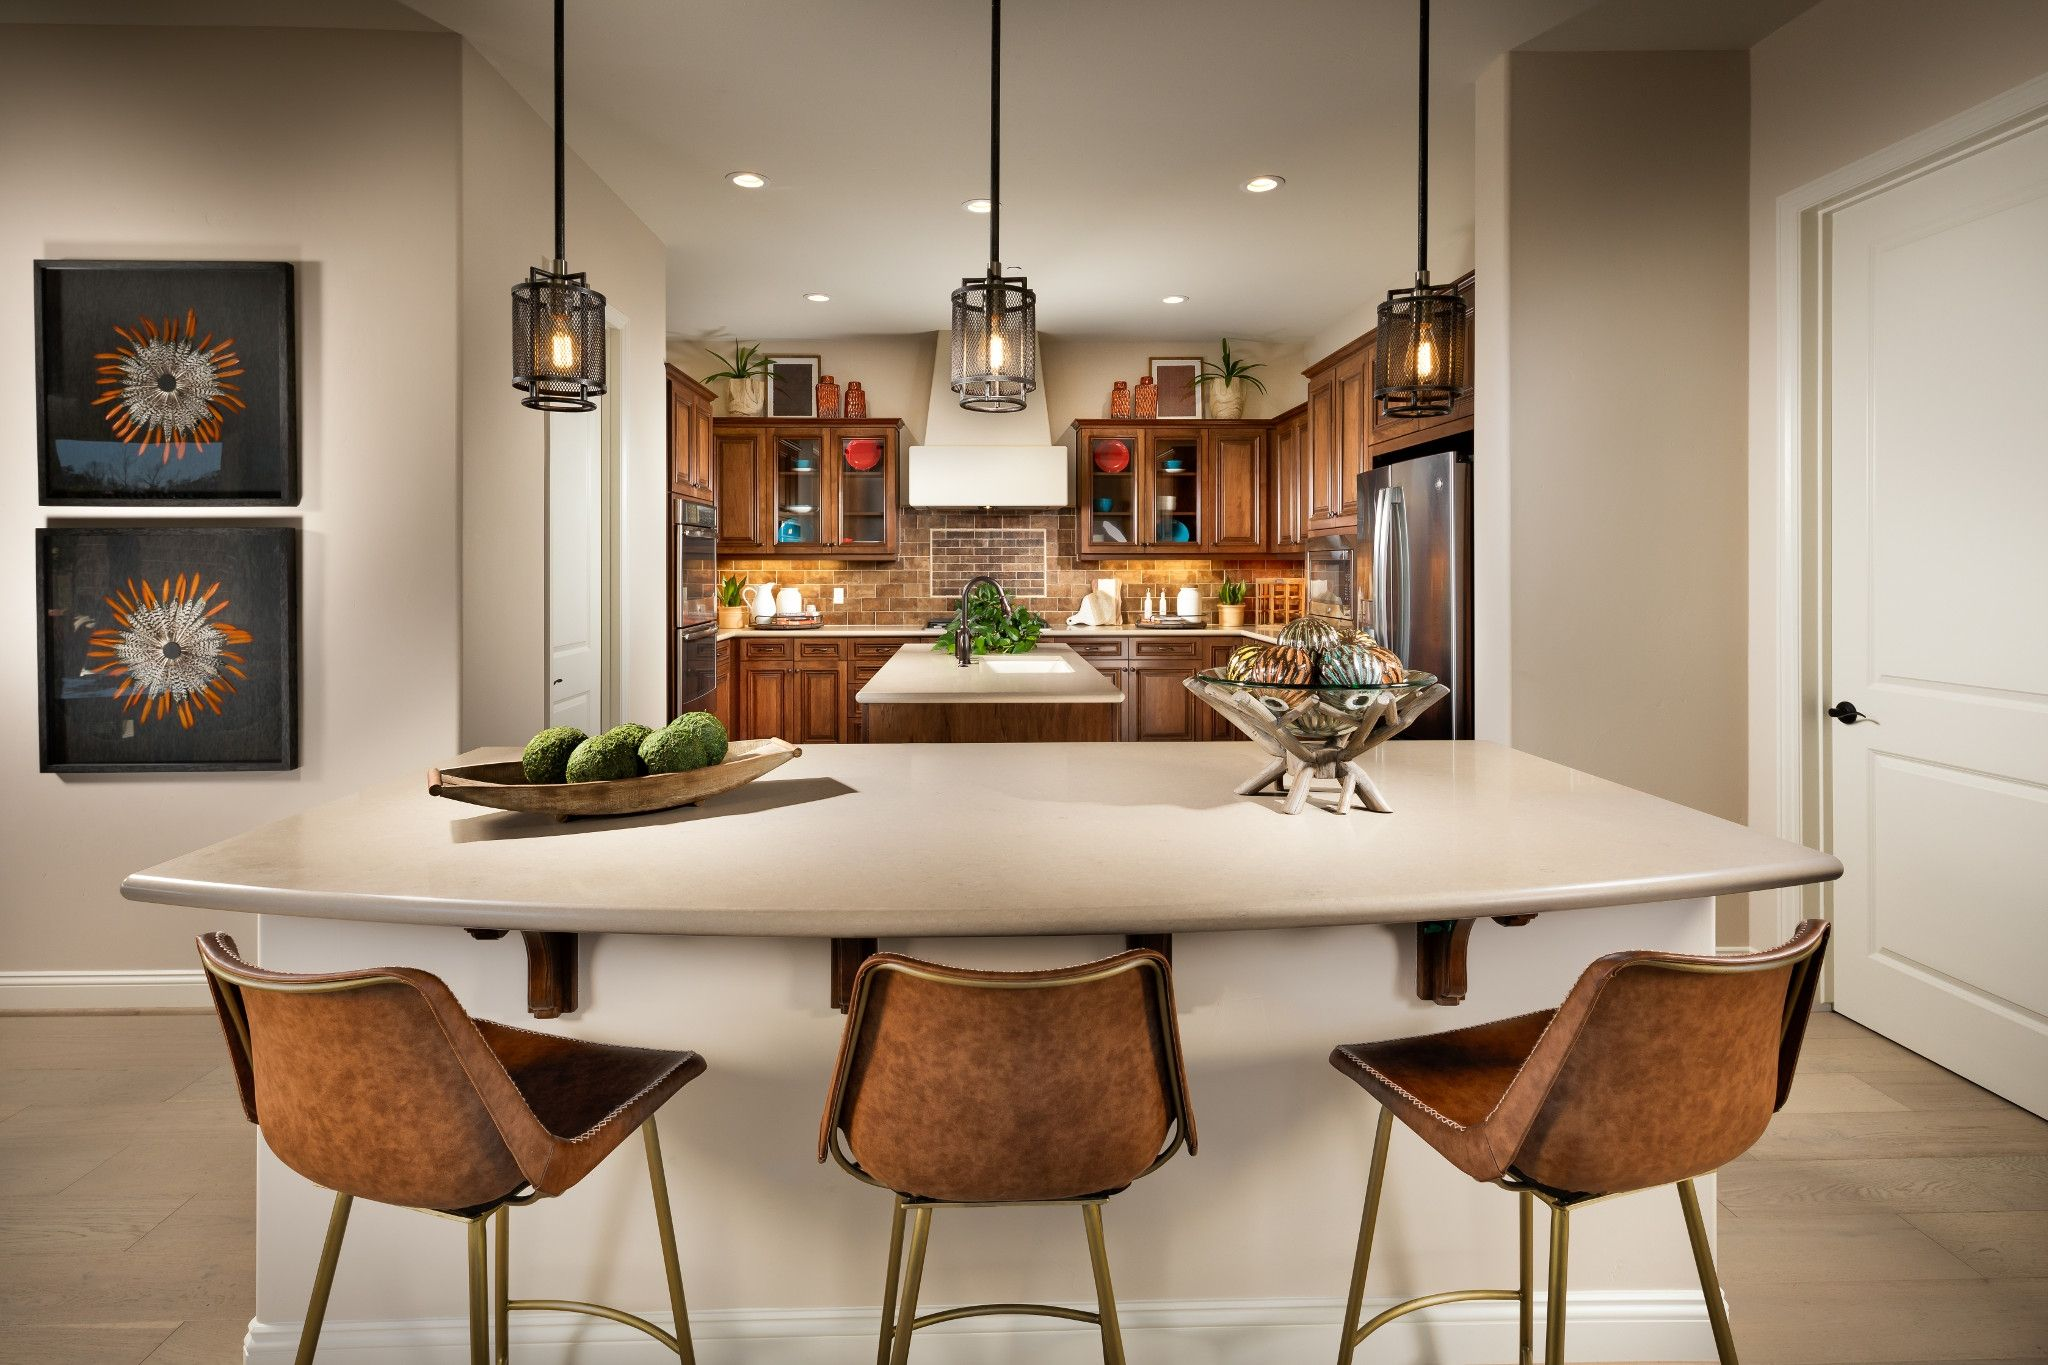 Kitchen-in-Avila-at-Trilogy® at Monarch Dunes and Monarch Ridge Town Homes-in-Nipomo